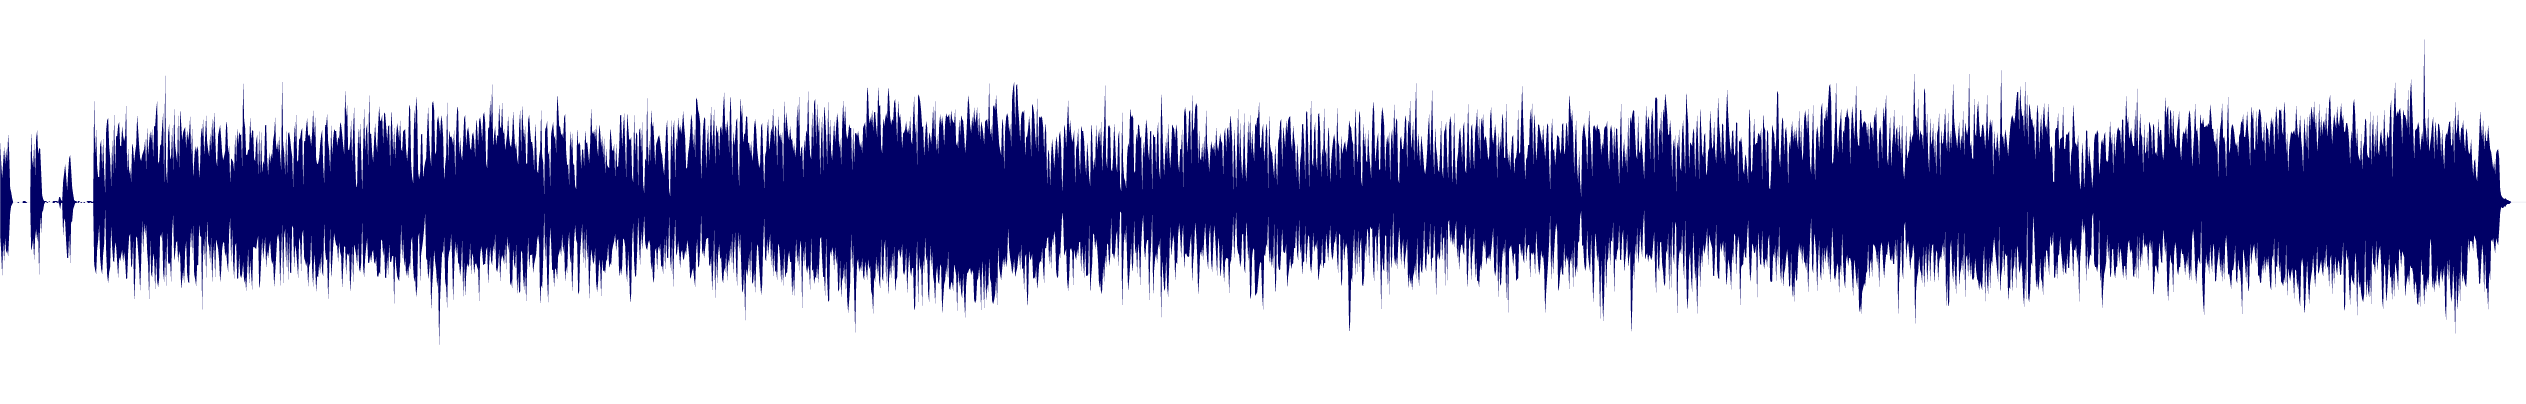 waveform of track #98634